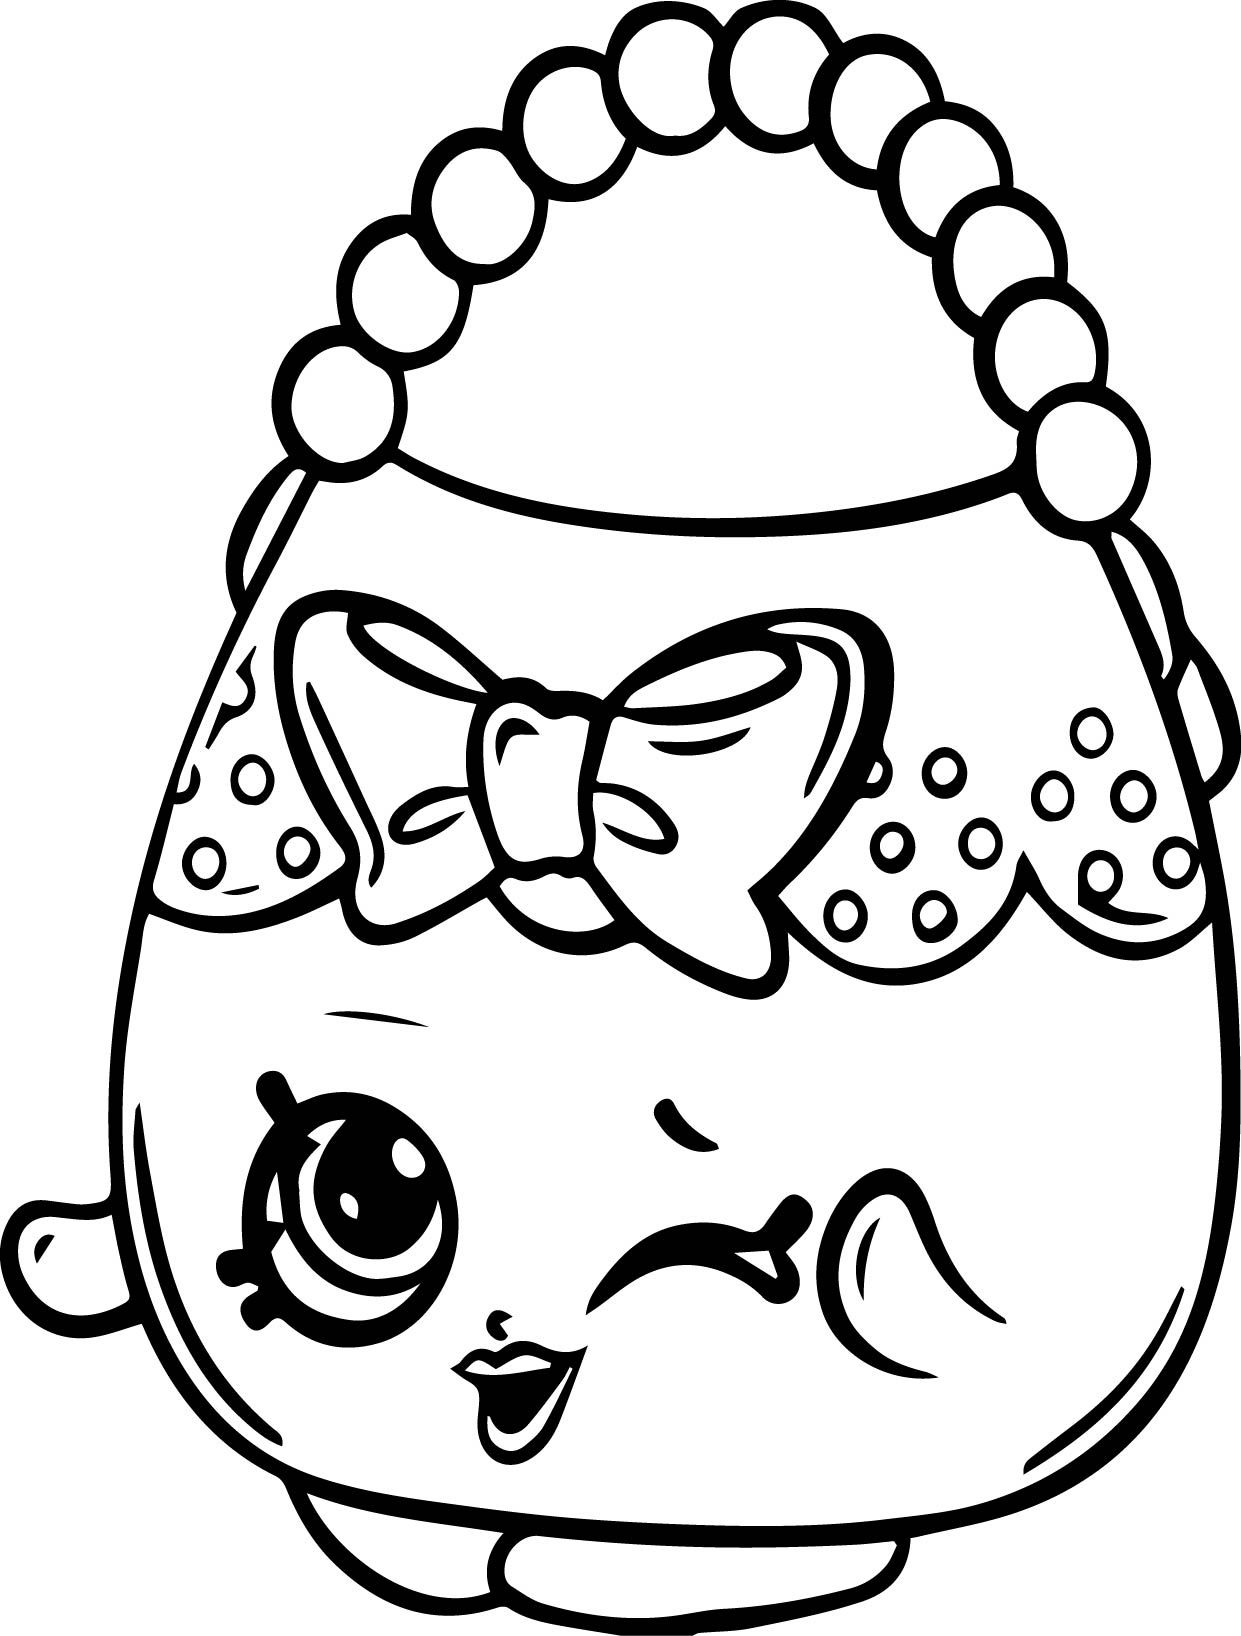 Shopkins Coloring Pages 33 | Girl B-day Party | Pinterest | Shopkins ...